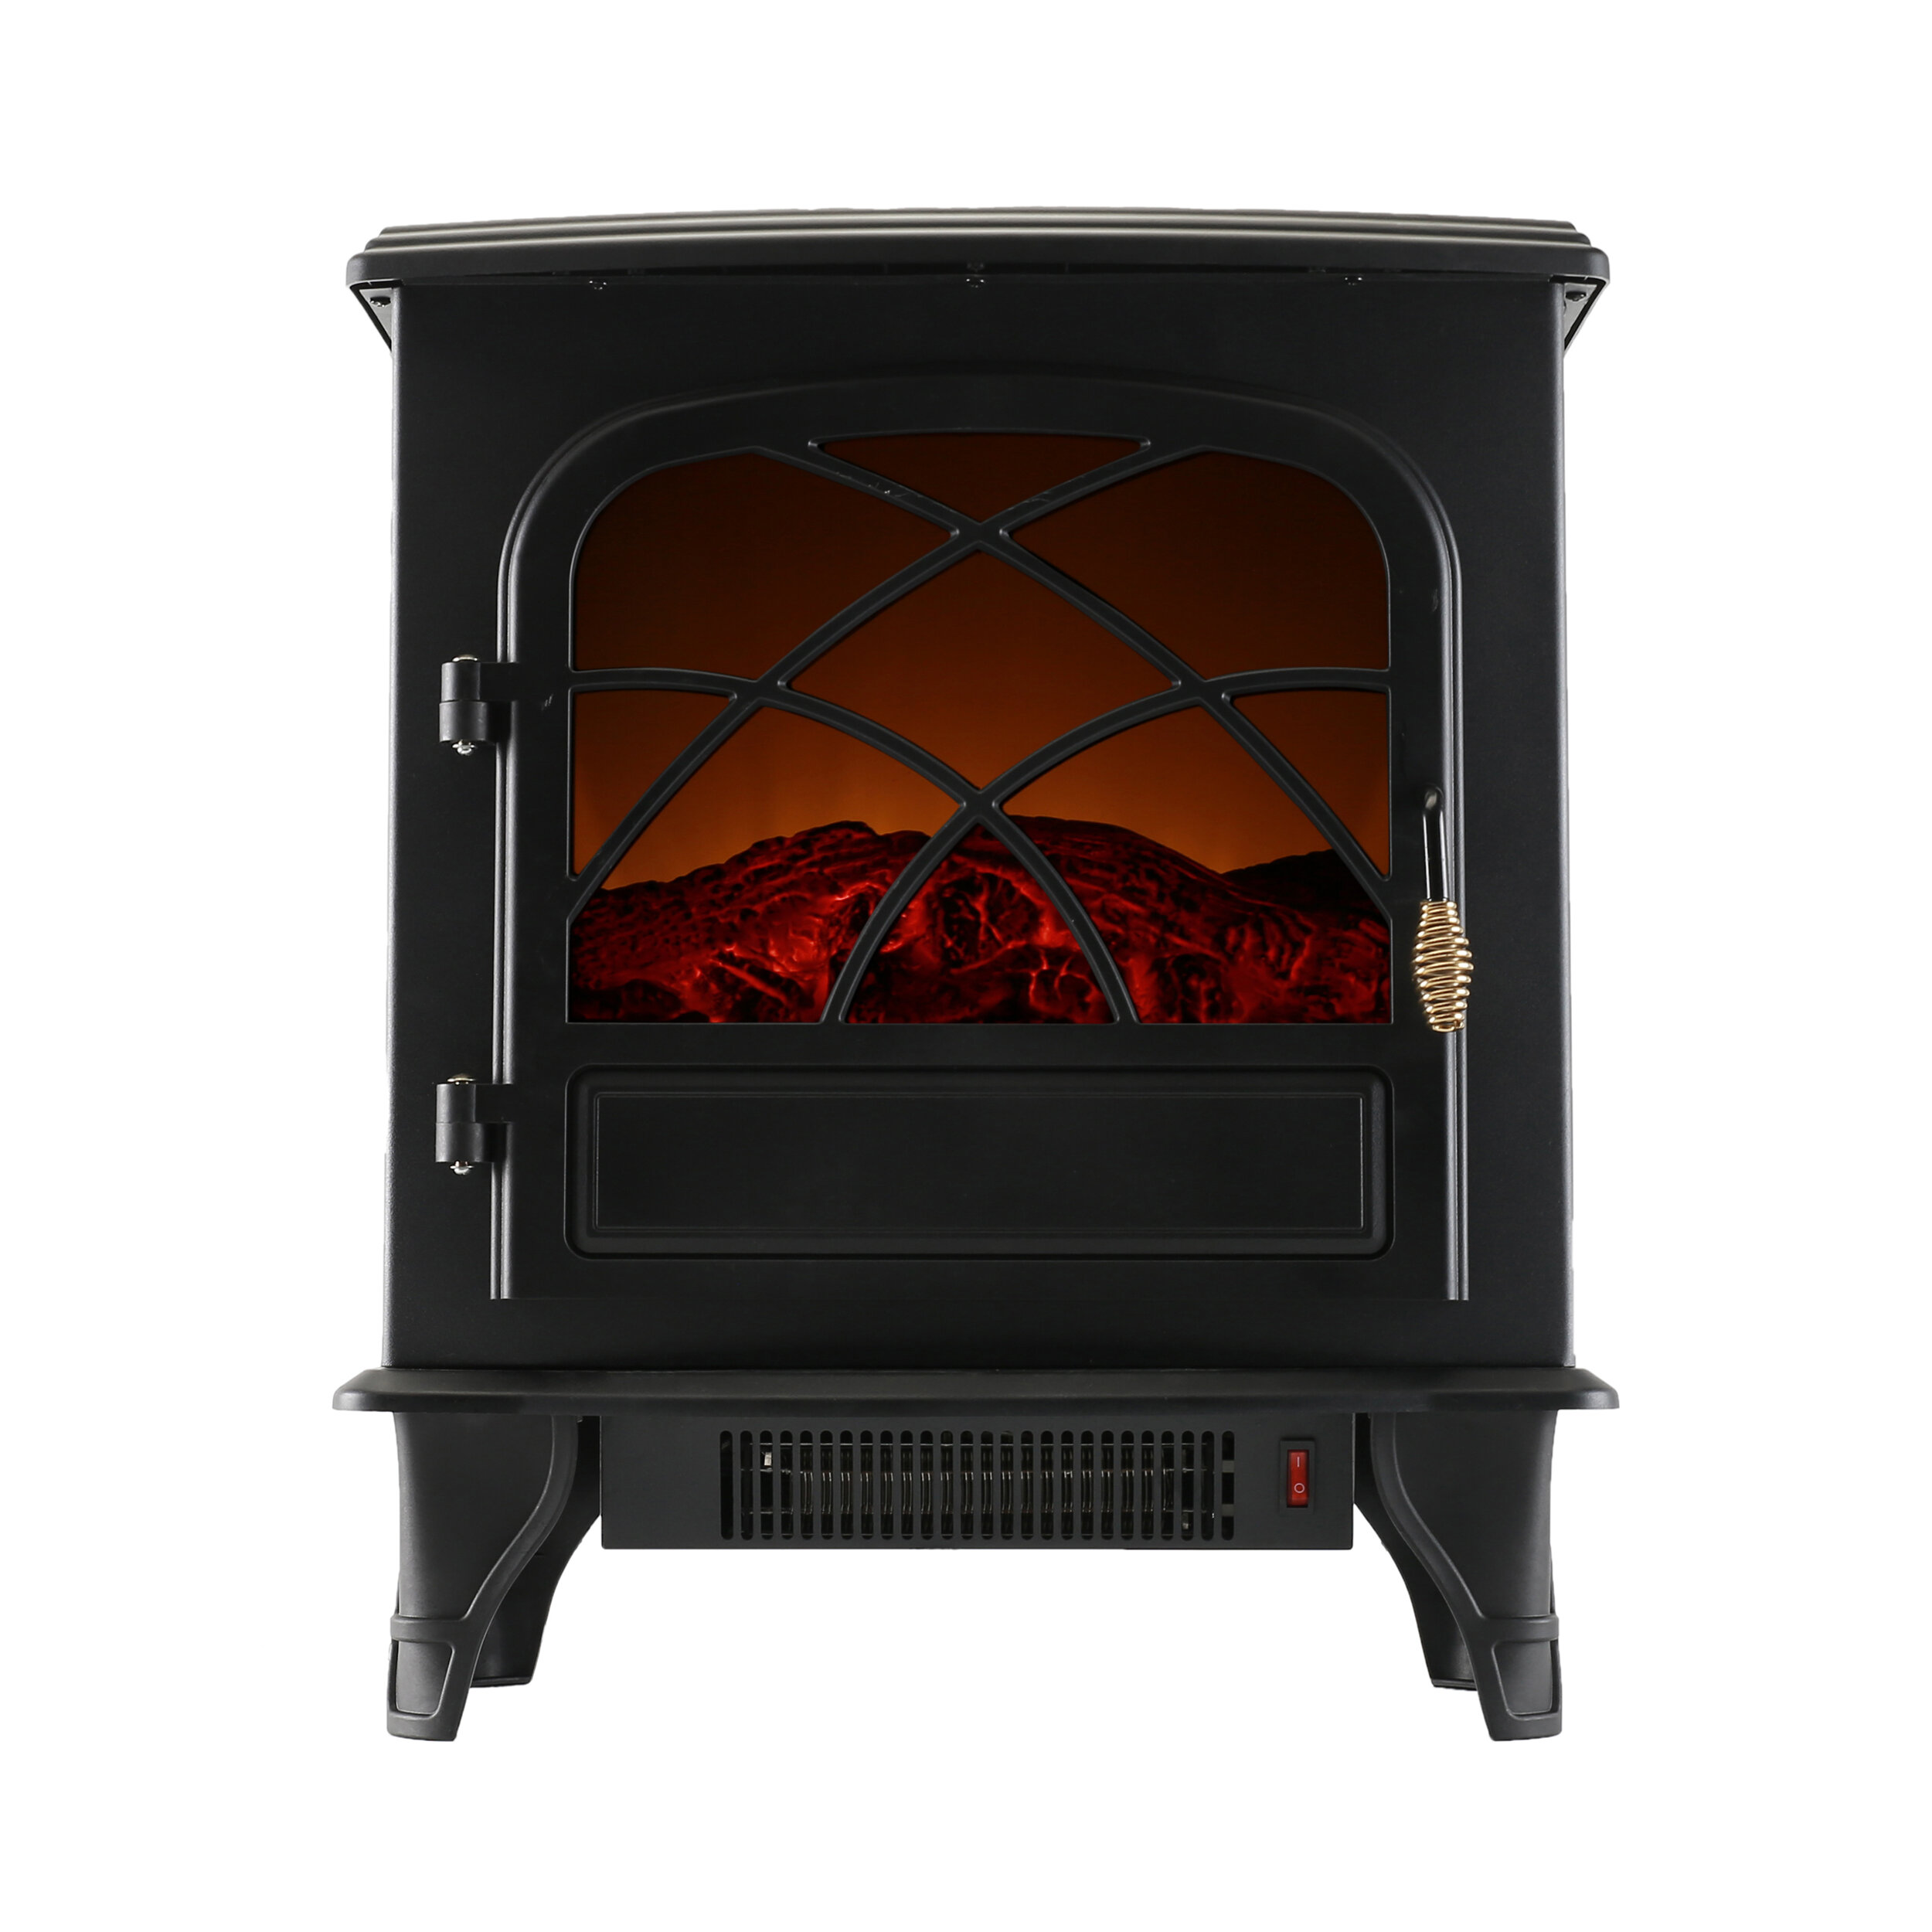 Portable Indoor Home Compact Electric Wood Stove Fireplace